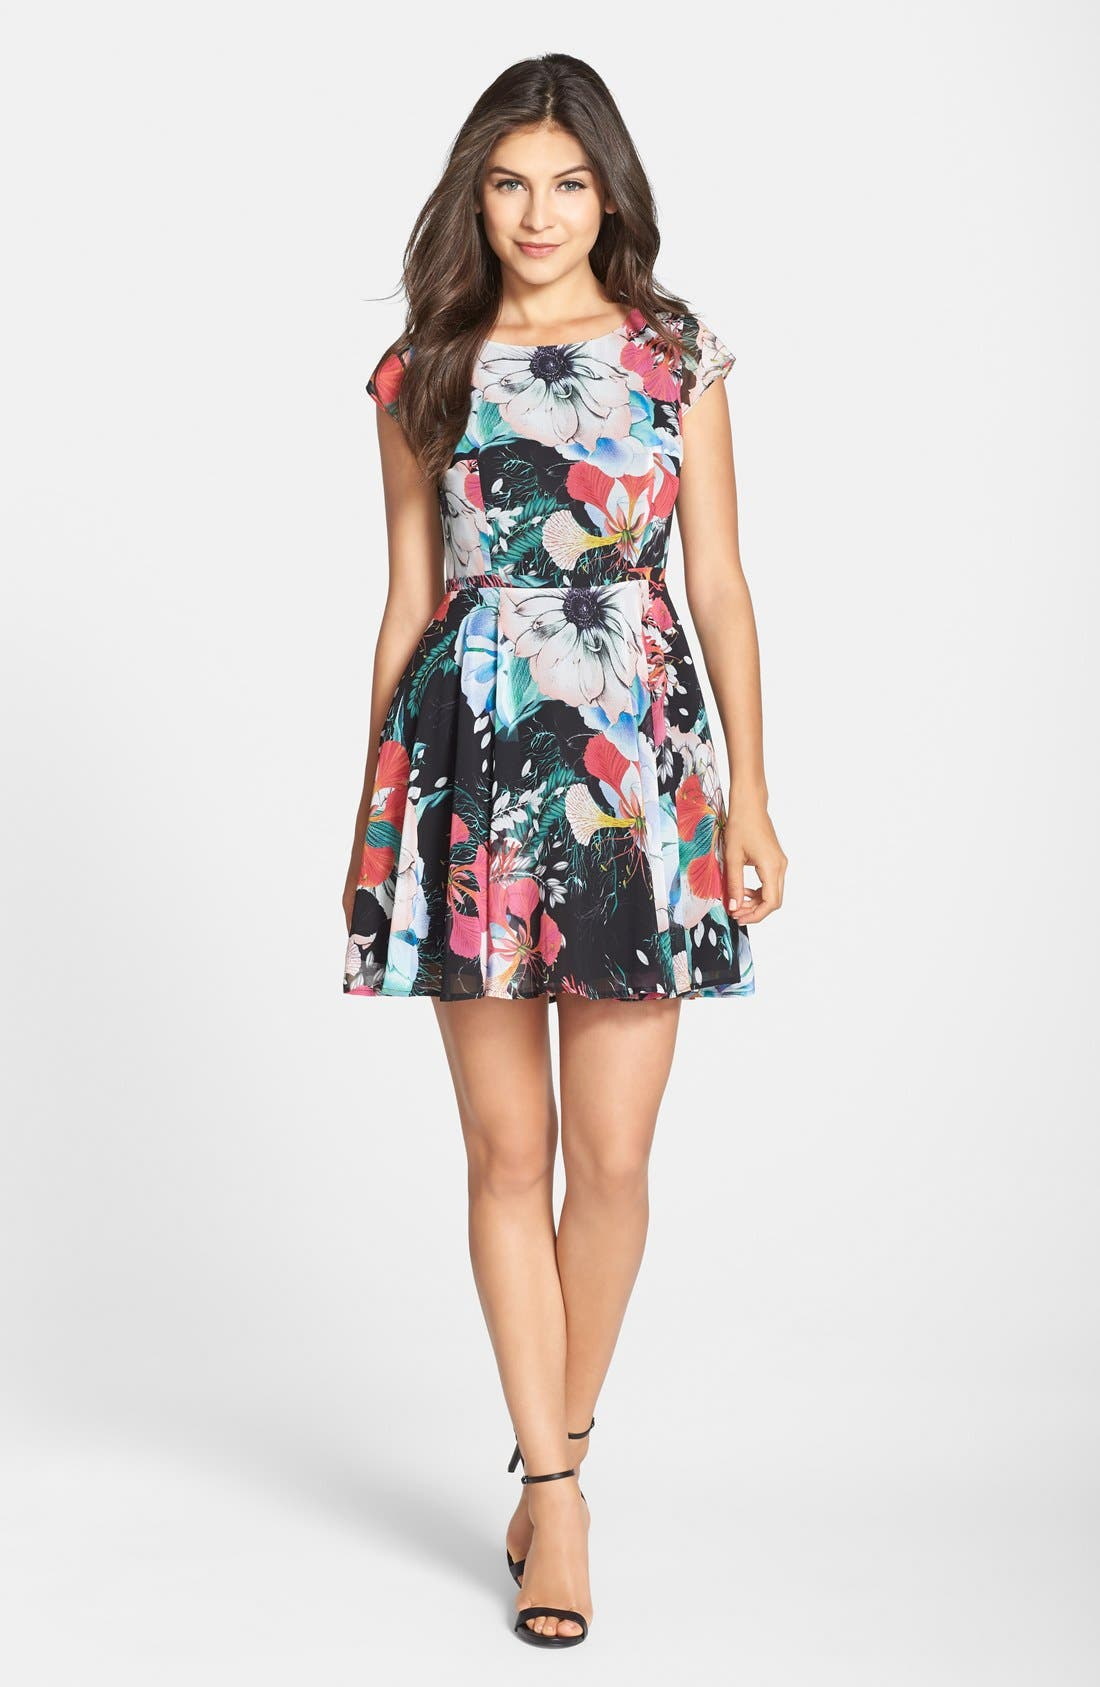 Alternate Image 1 Selected - French Connection 'Floral Reef' Print Chiffon Fit & Flare Dress